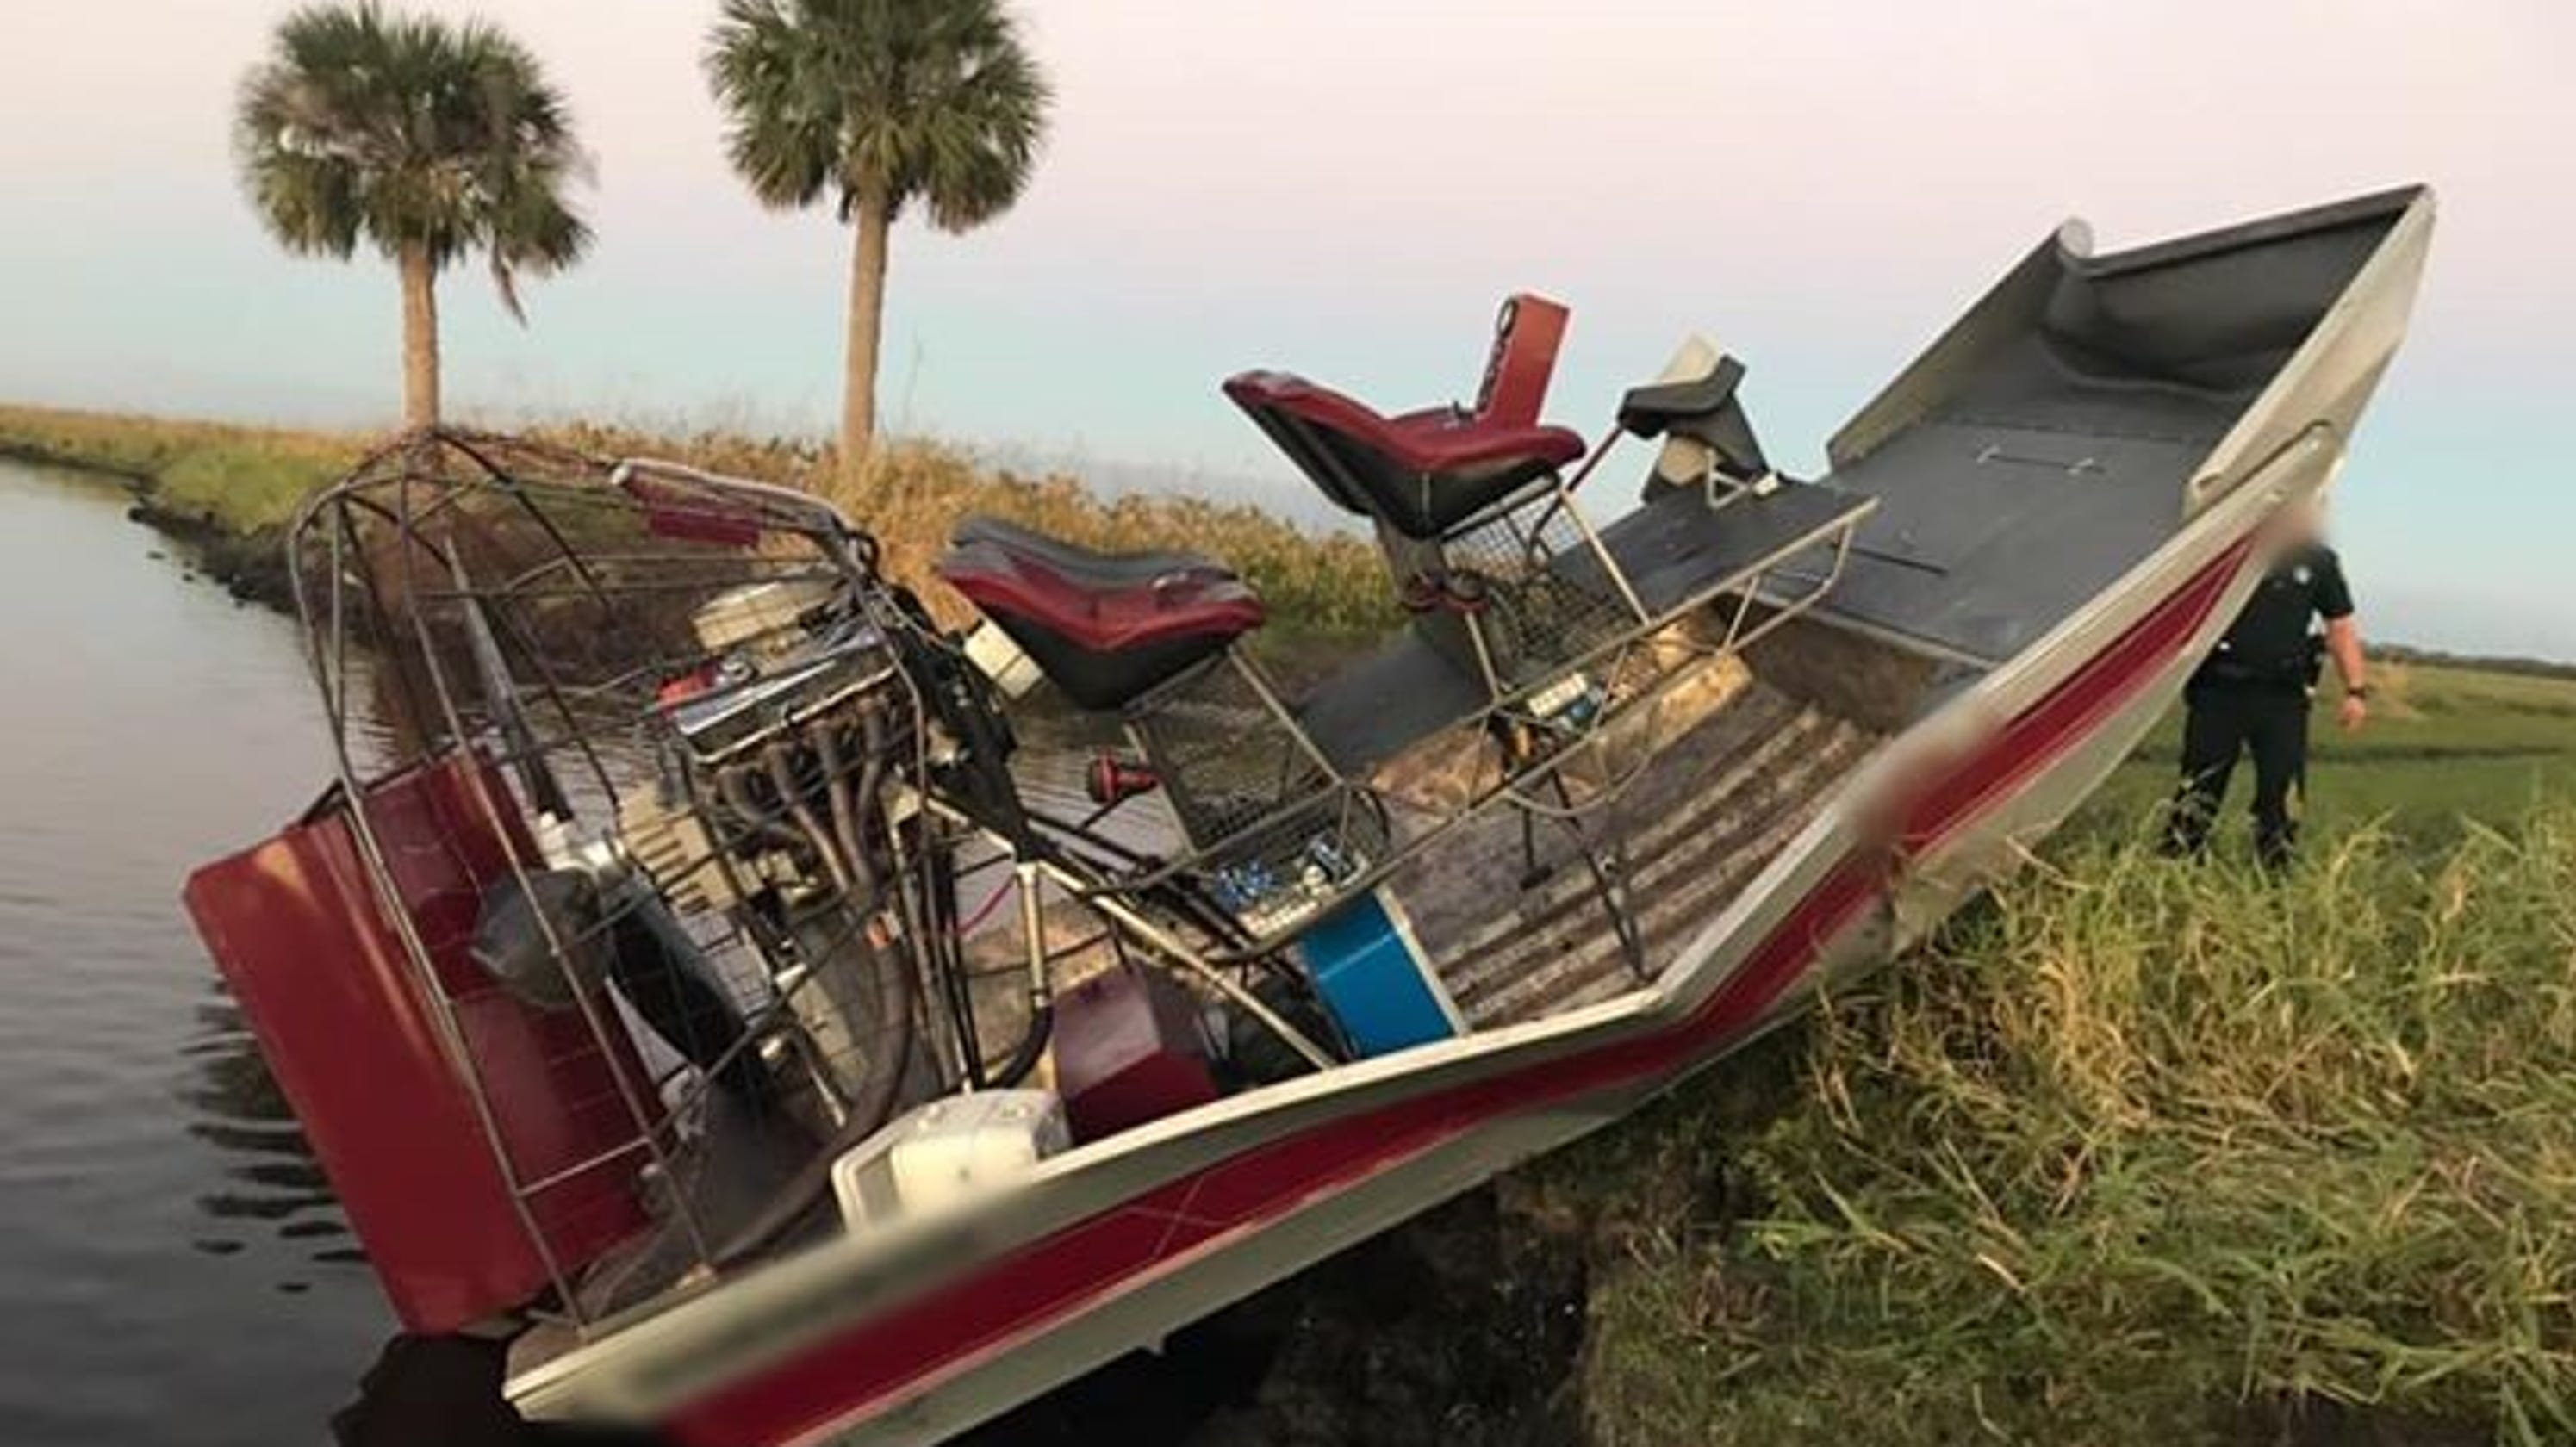 Airboat crash injures three near Lone Cabbage Fish Camp on map of casselberry, map of north redington shores, map of big coppitt key, map of sebastian inlet state park, map of melbourne beach, map of wheat, map of long key, map of wimauma, map of citrus, map of oak hill, map of shalimar, map of howey in the hills, map of callaway, map of lake panasoffkee, map of cassadaga, map of platinum, map of eastport, map of sun city center, map of vero lake estates, map of rotonda,